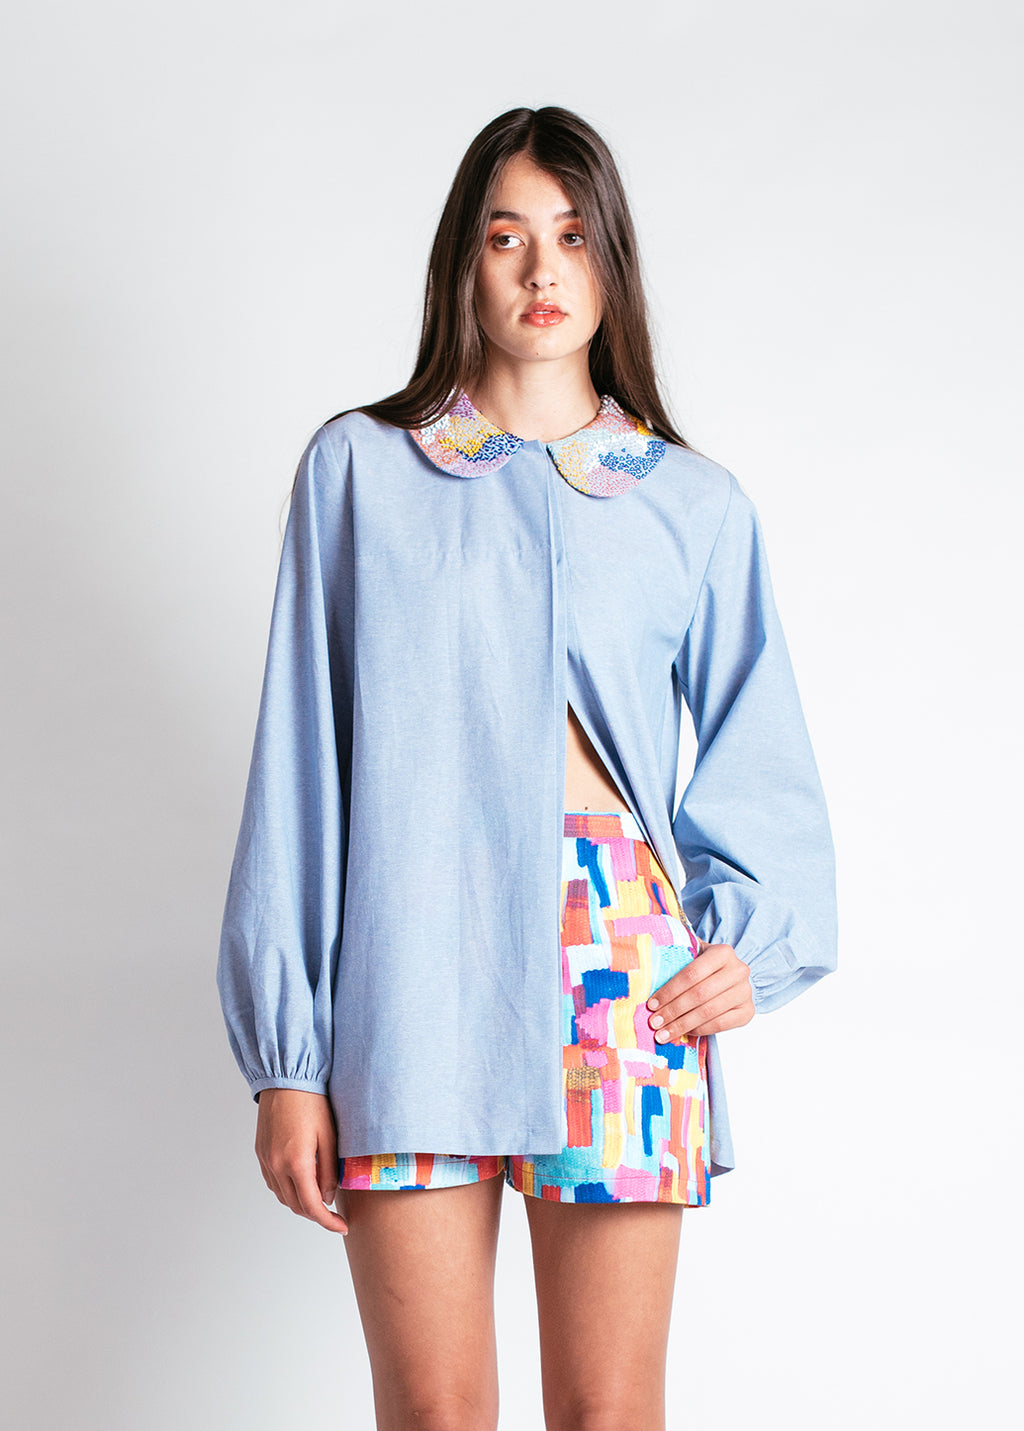 Meduoso Babydoll Blouse with Hand-Embroidered Collar in Chambray